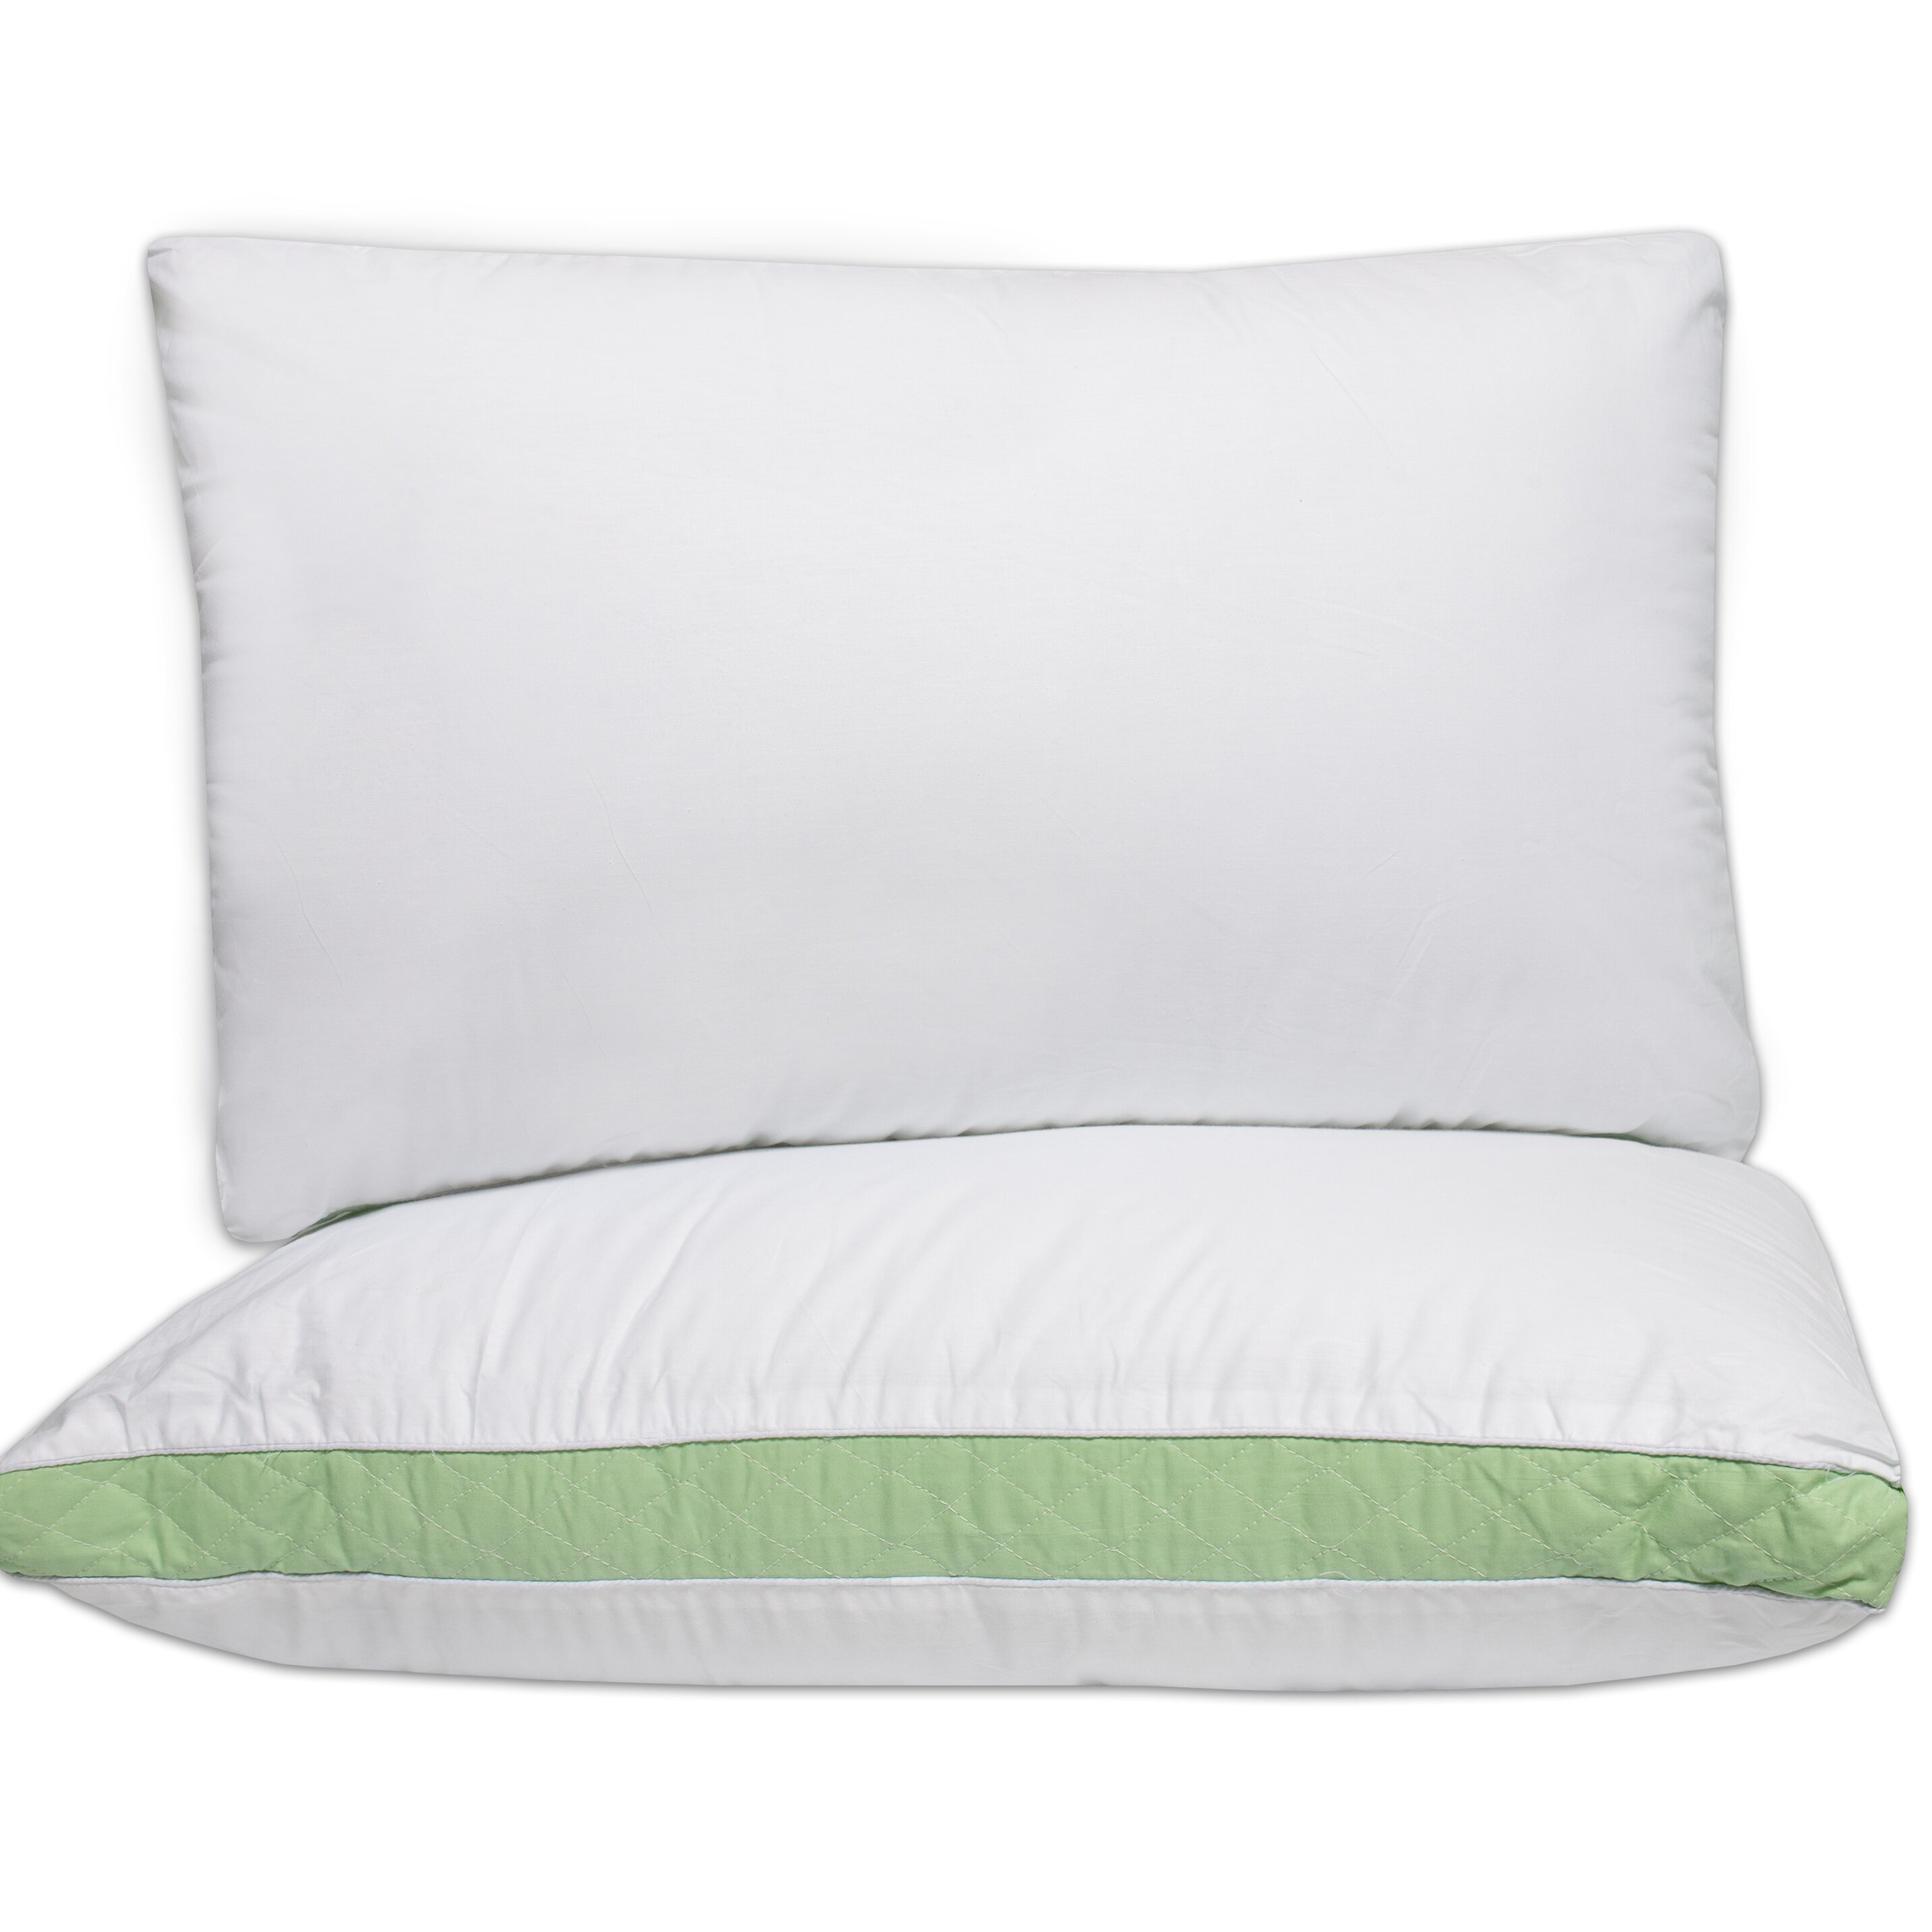 Sweet Home Collection Iso Pedic Hypoallergenic Fill Firm